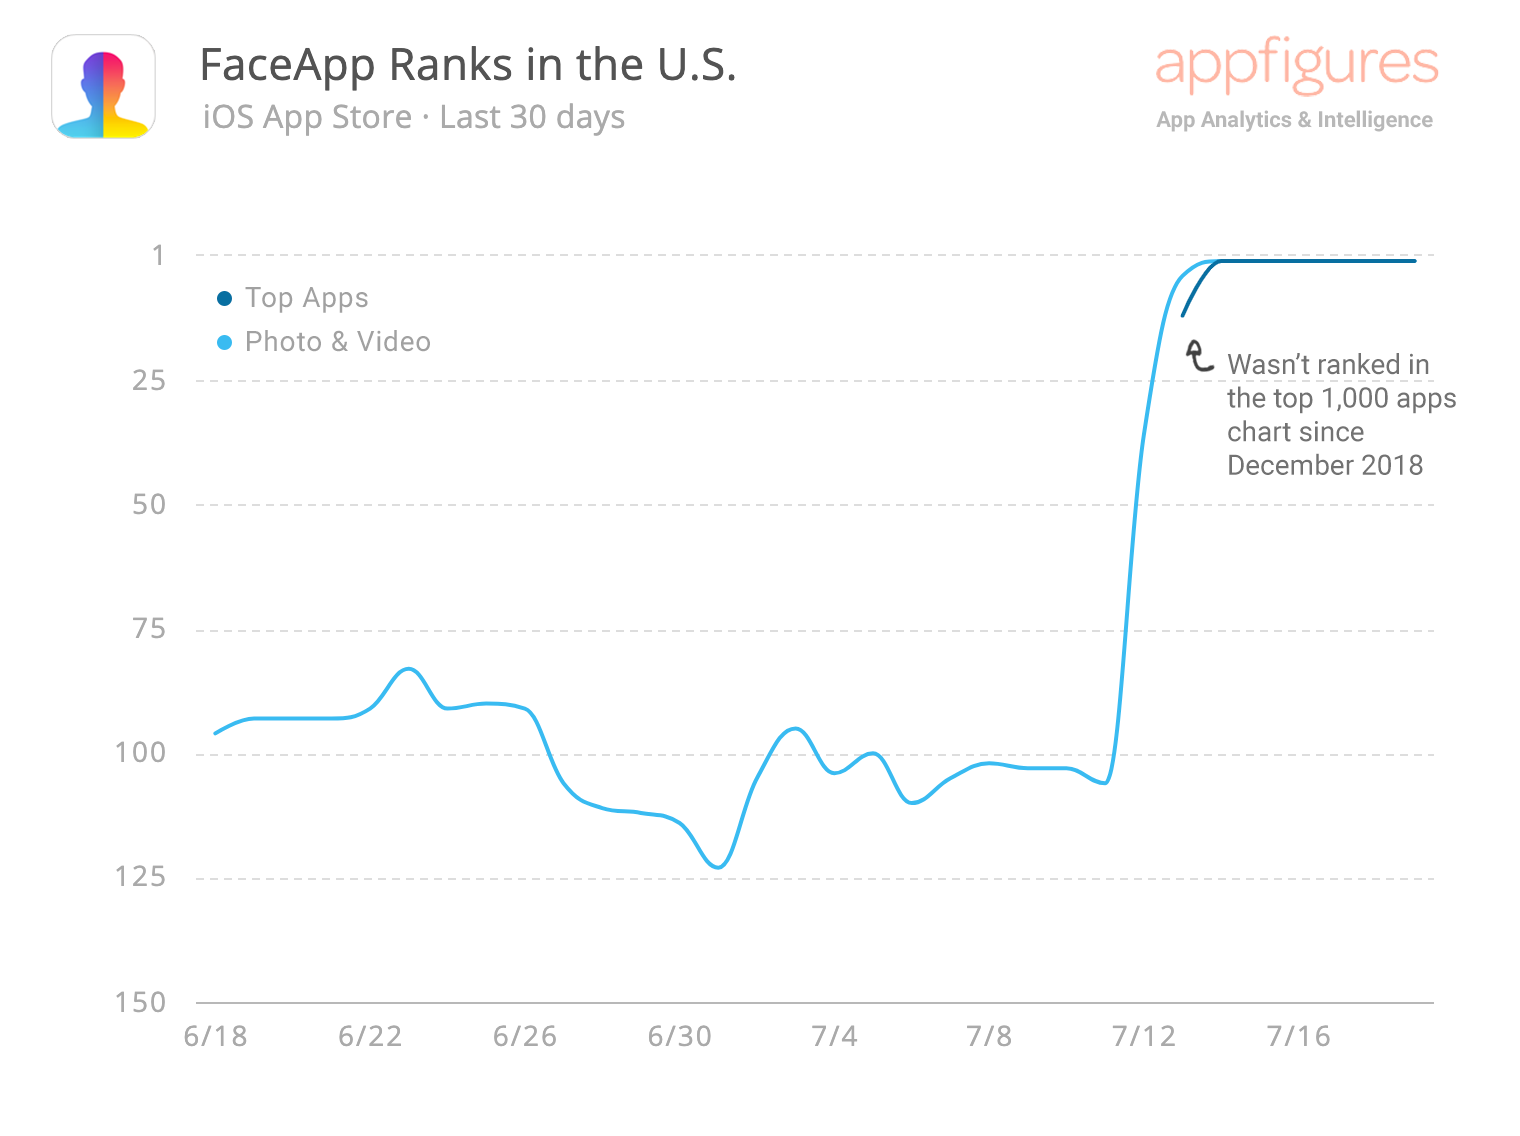 FaceApp App Store ranks by Appfigures